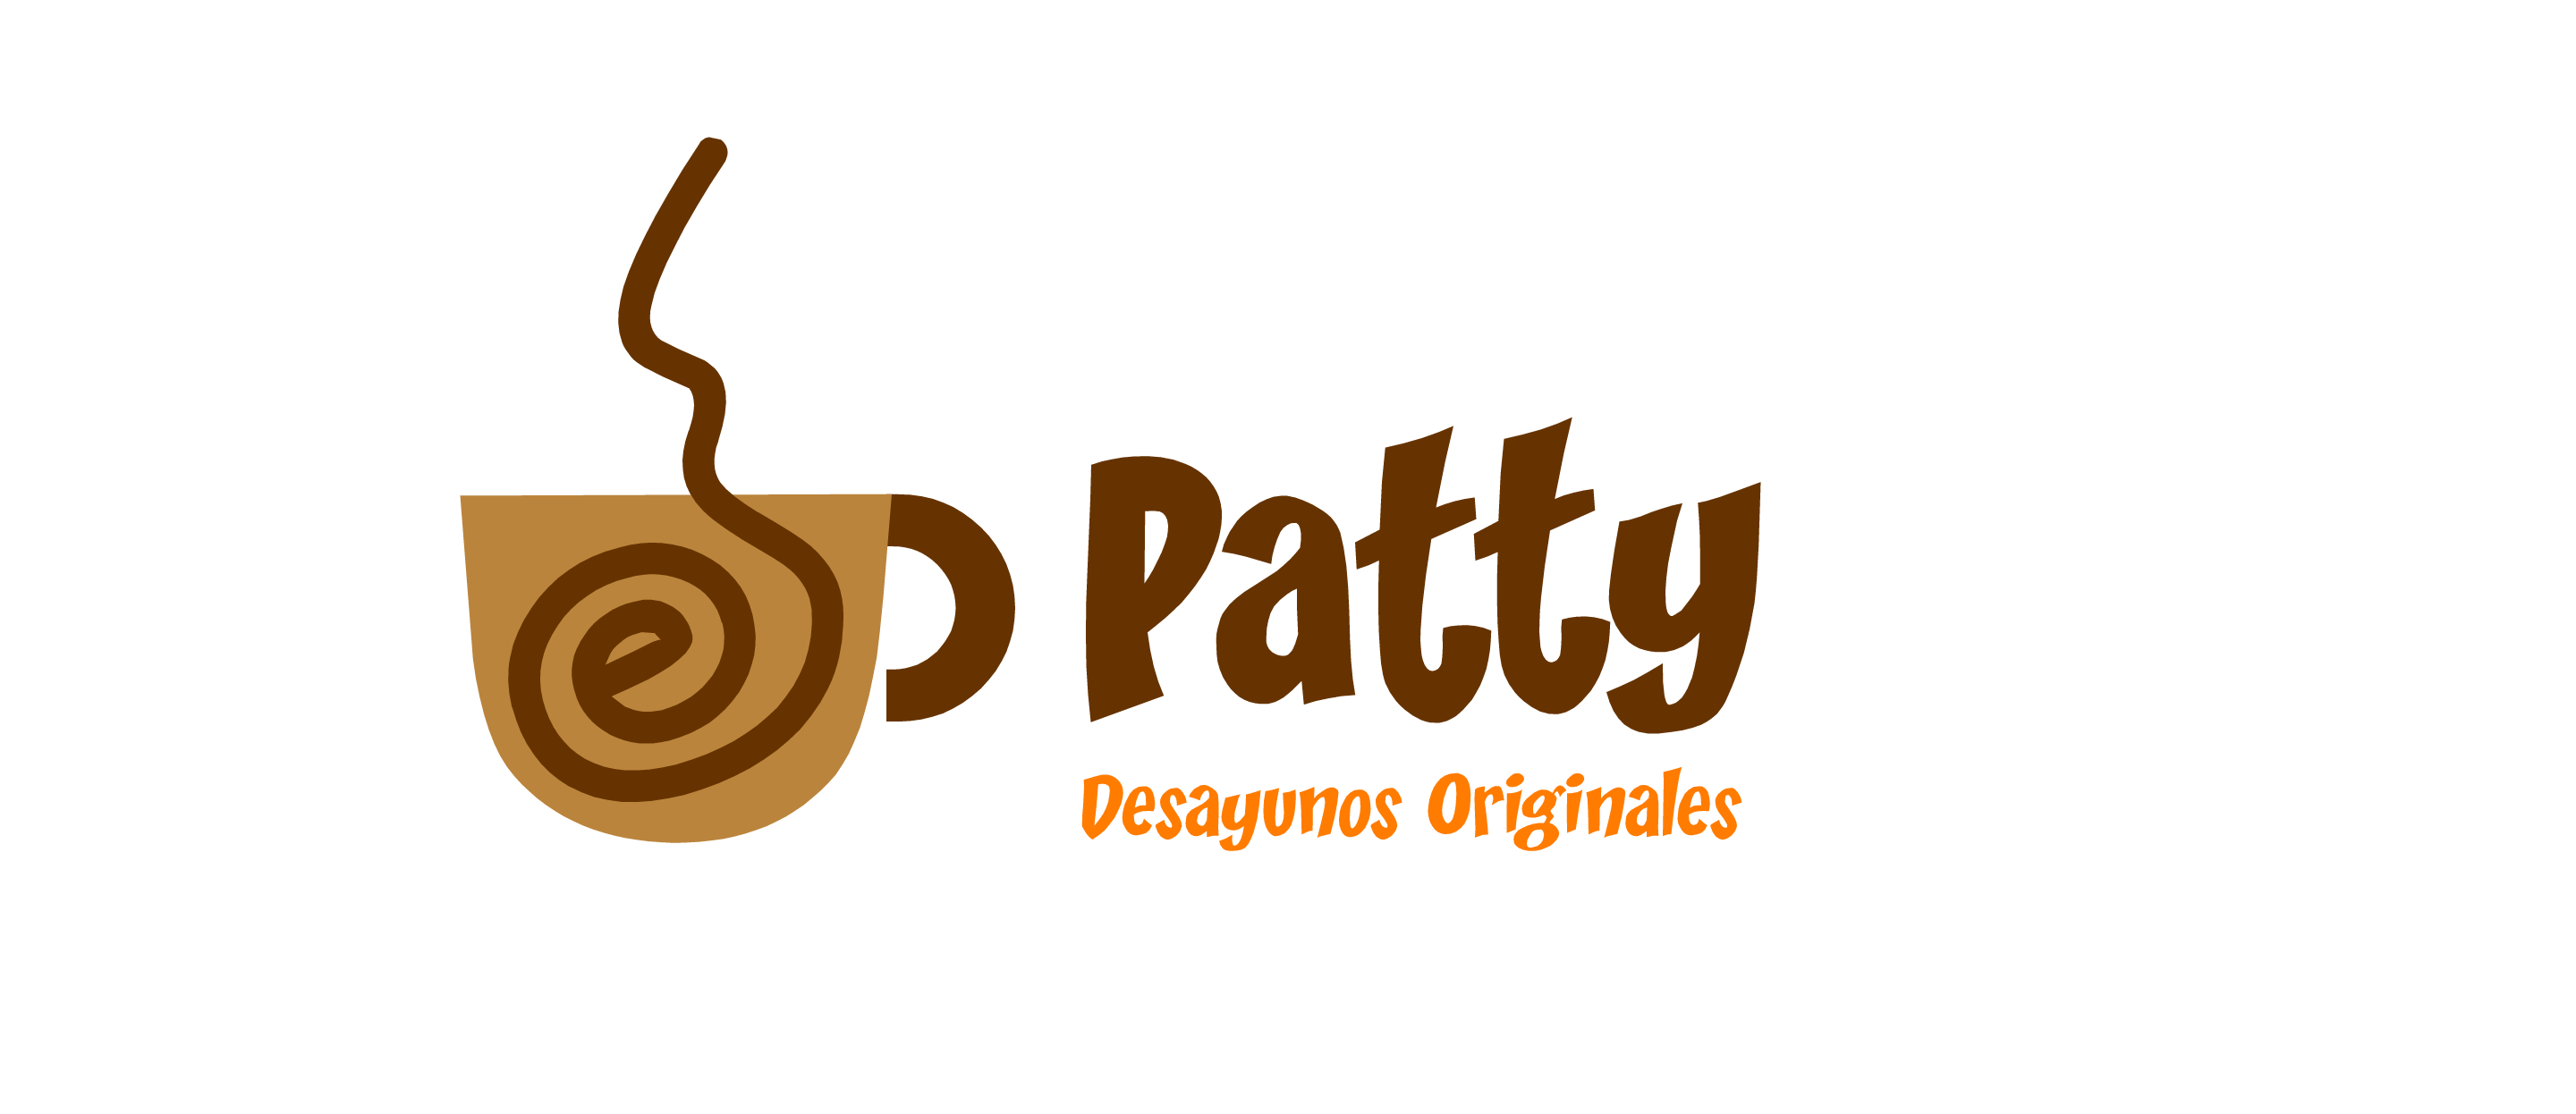 Patty Desayunos Originales